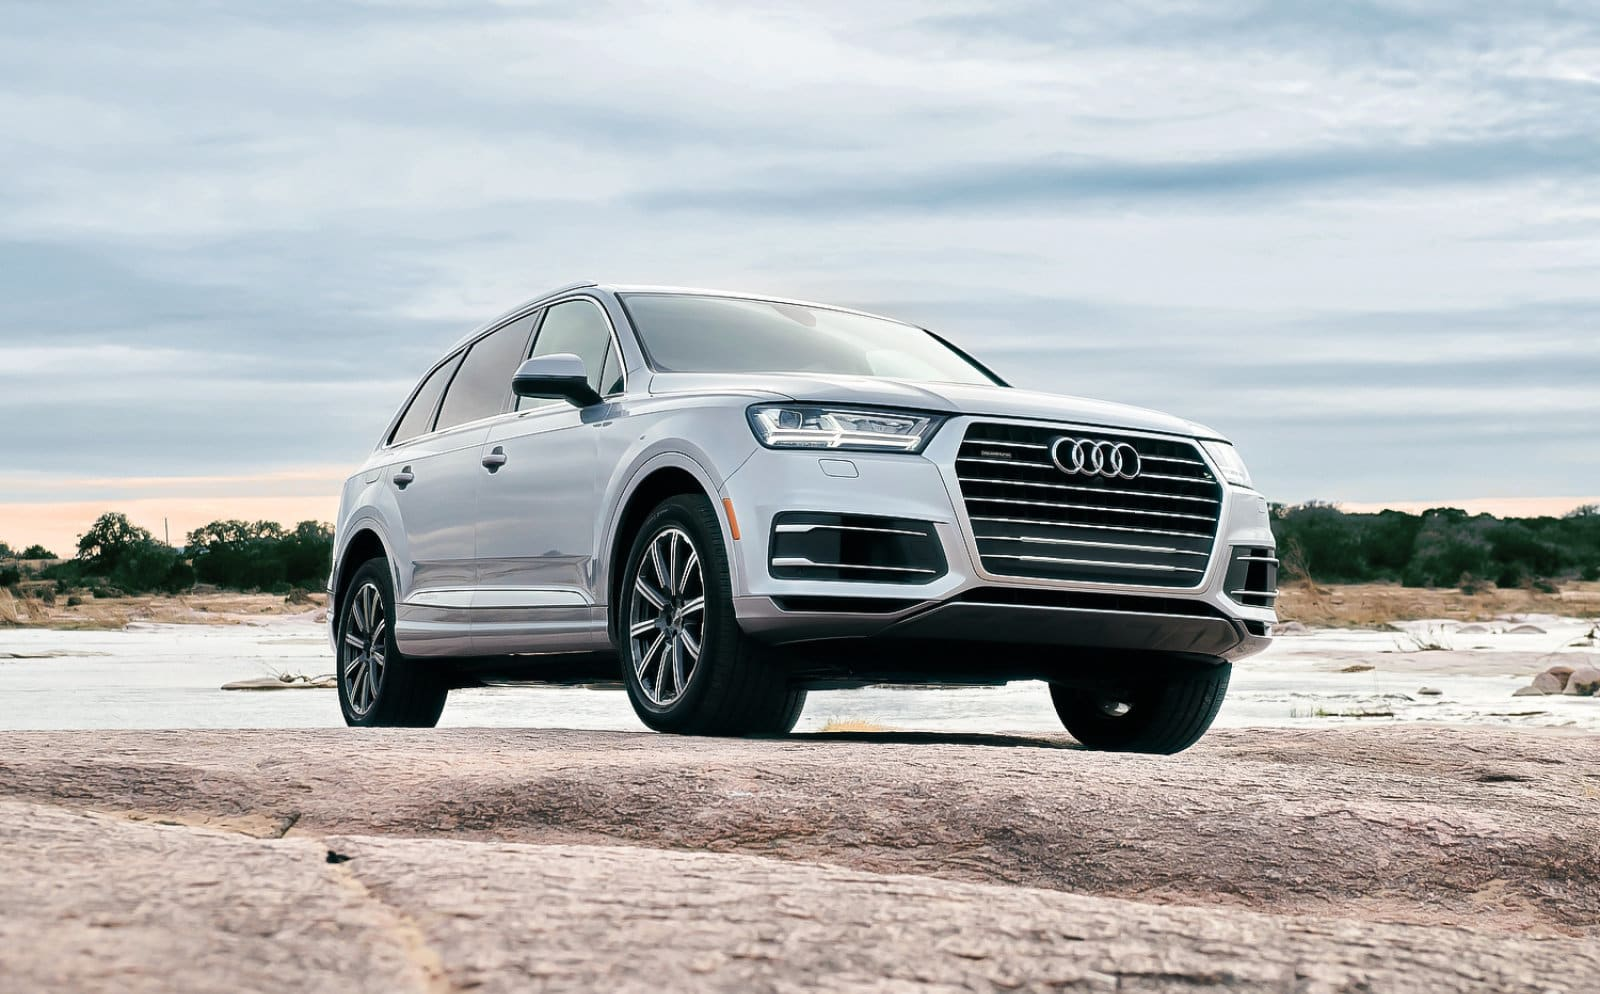 'Always Audi' program gives new customers free Silvercar rental days